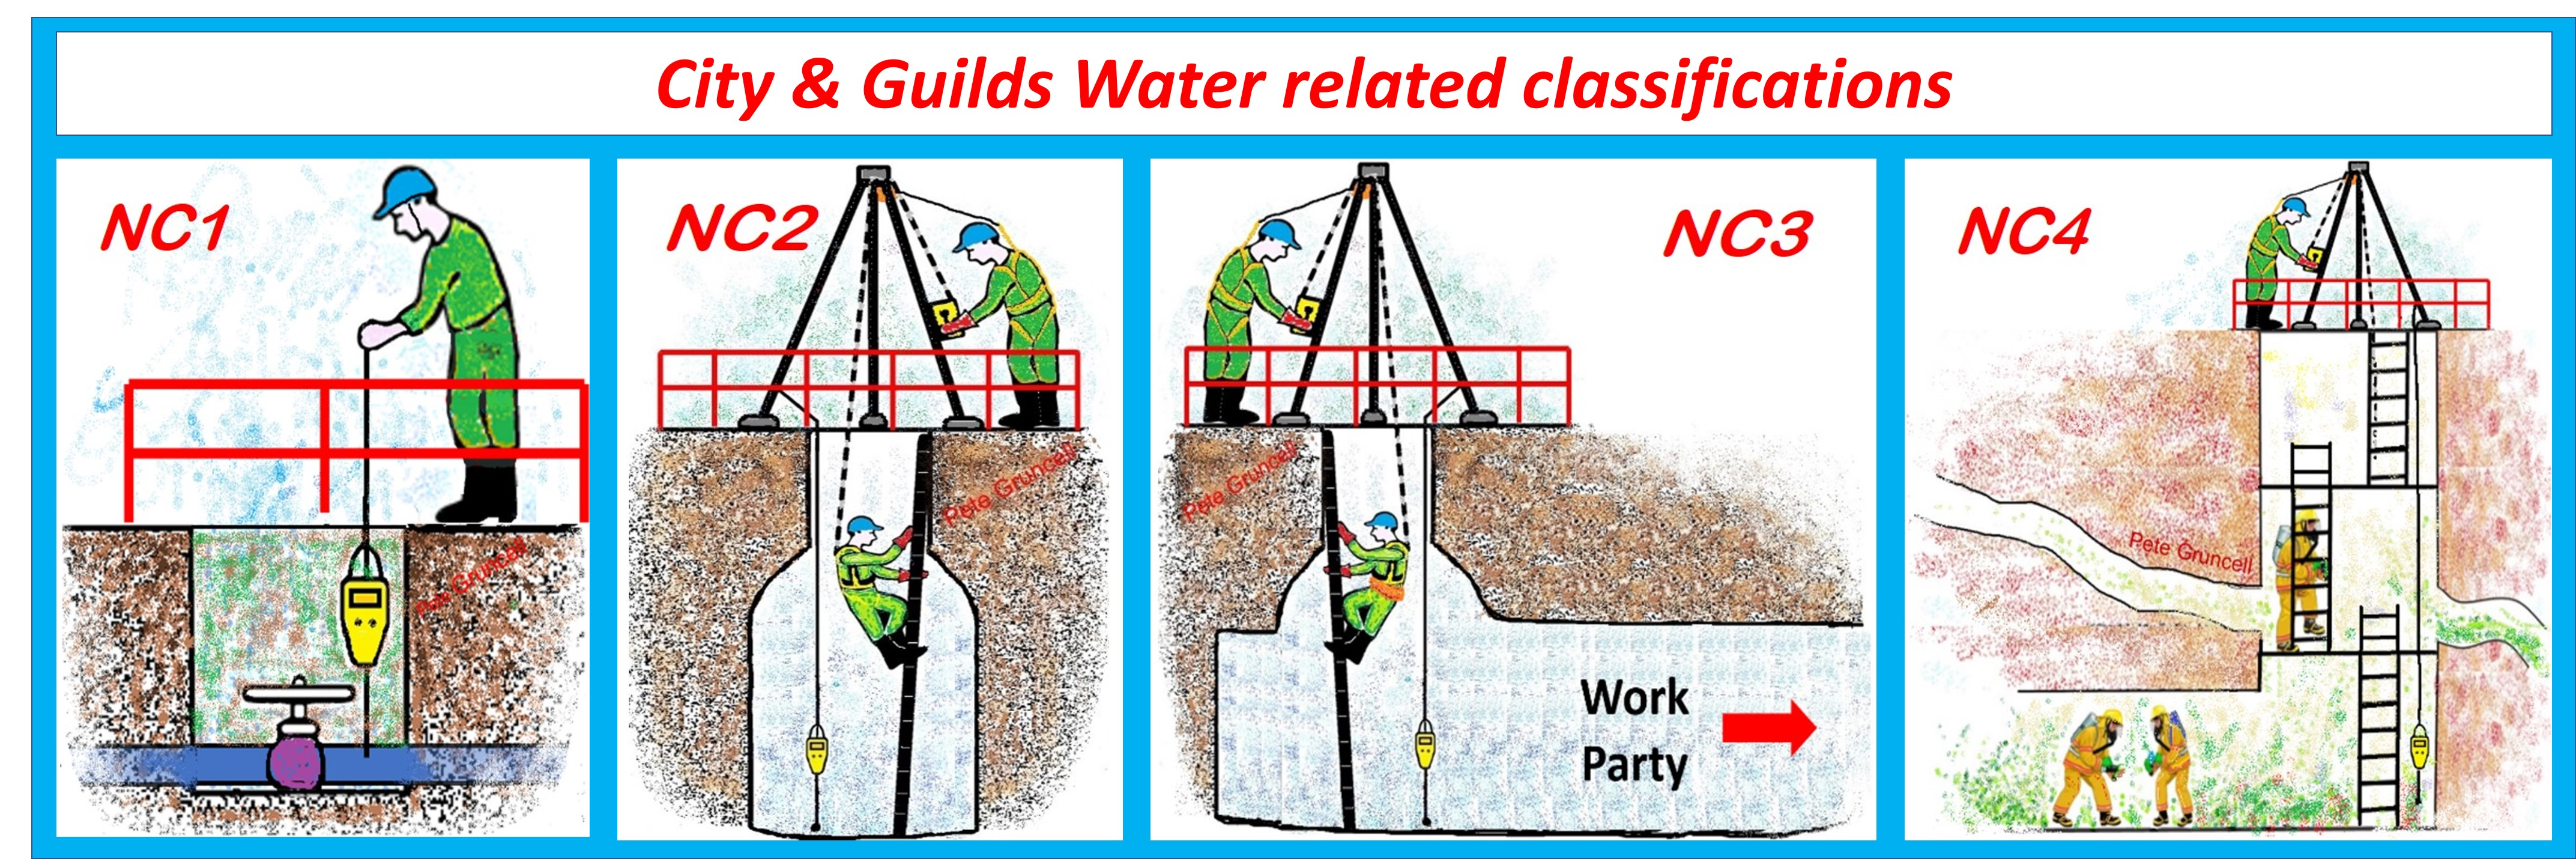 City & Guilds water related classifications